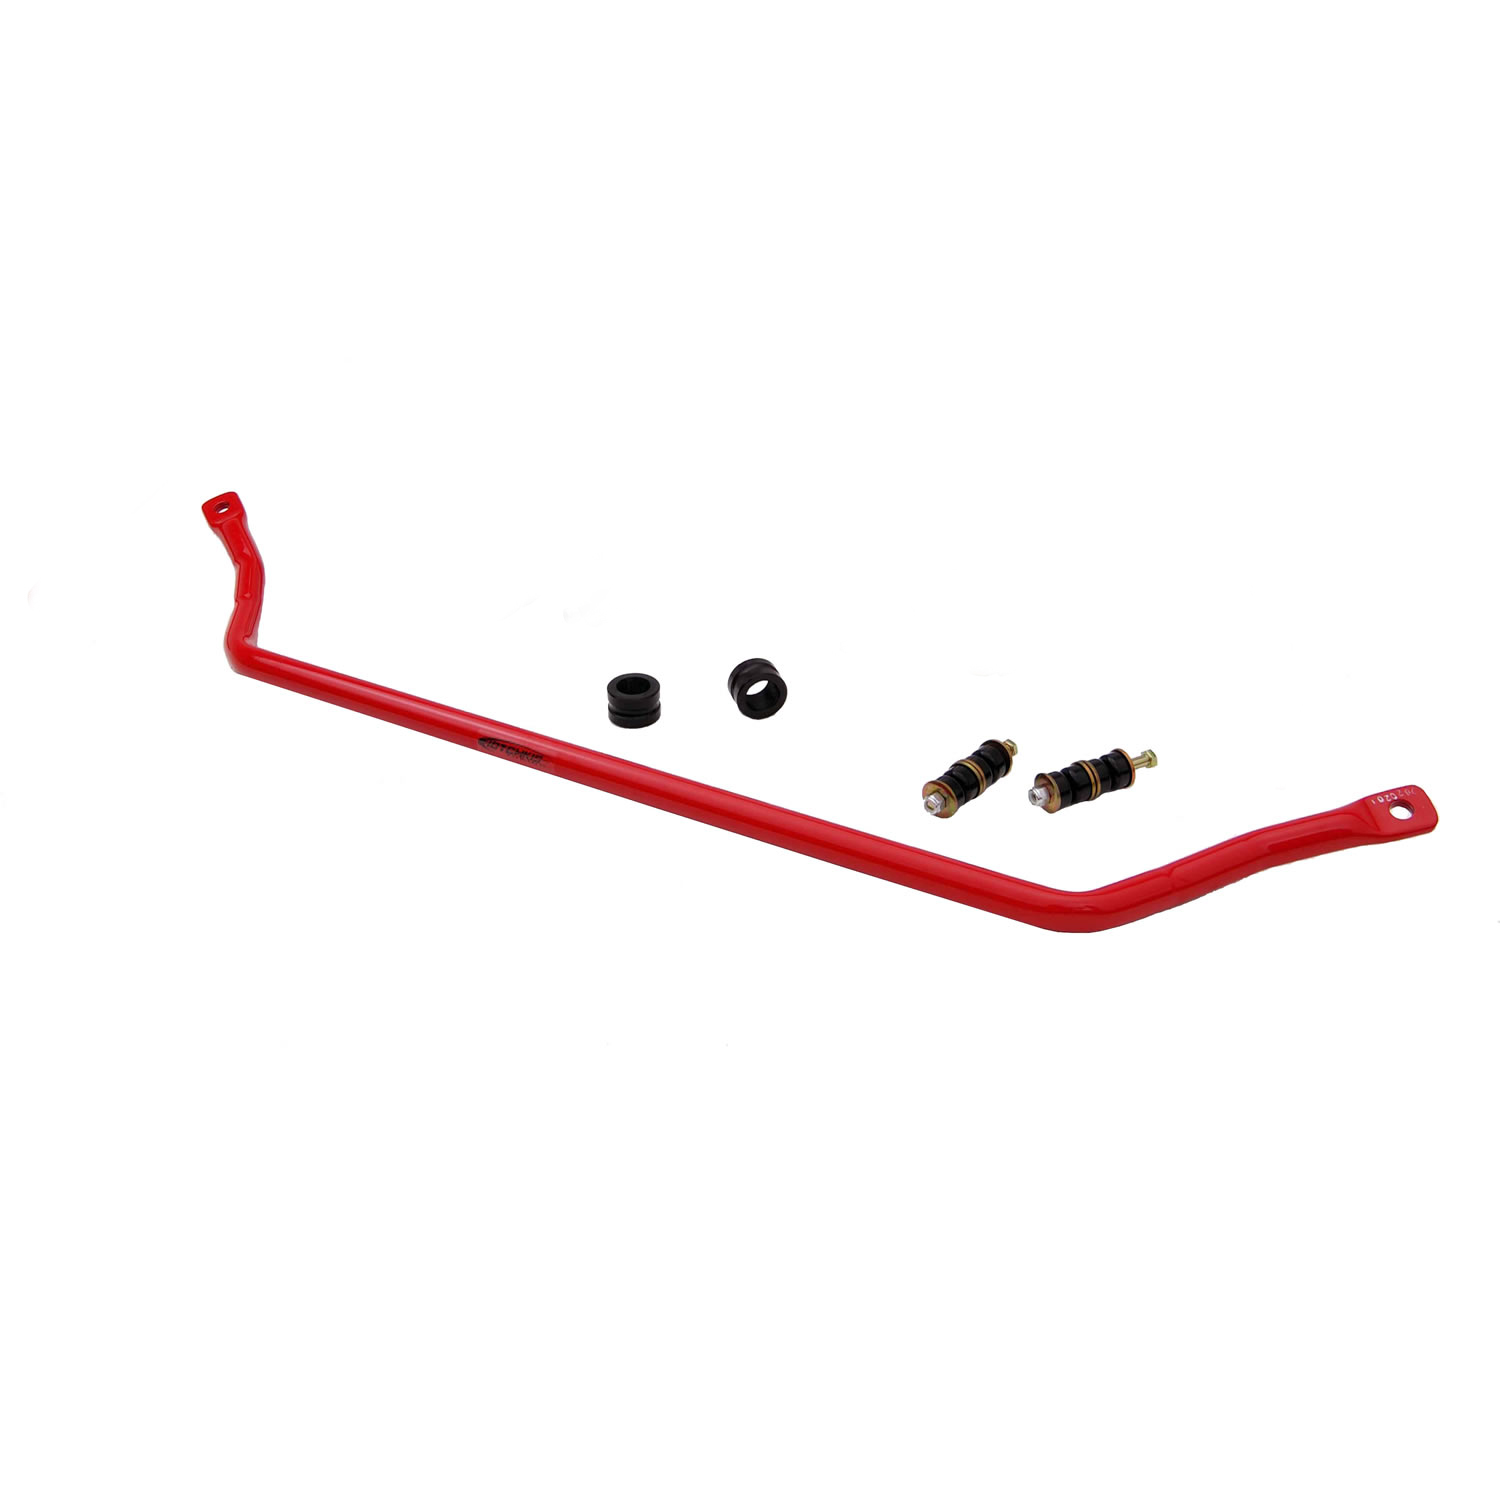 2003-2005 Dodge Neon SRT4 Rear Sport Sway Bars from Hotchkis Sport Suspension